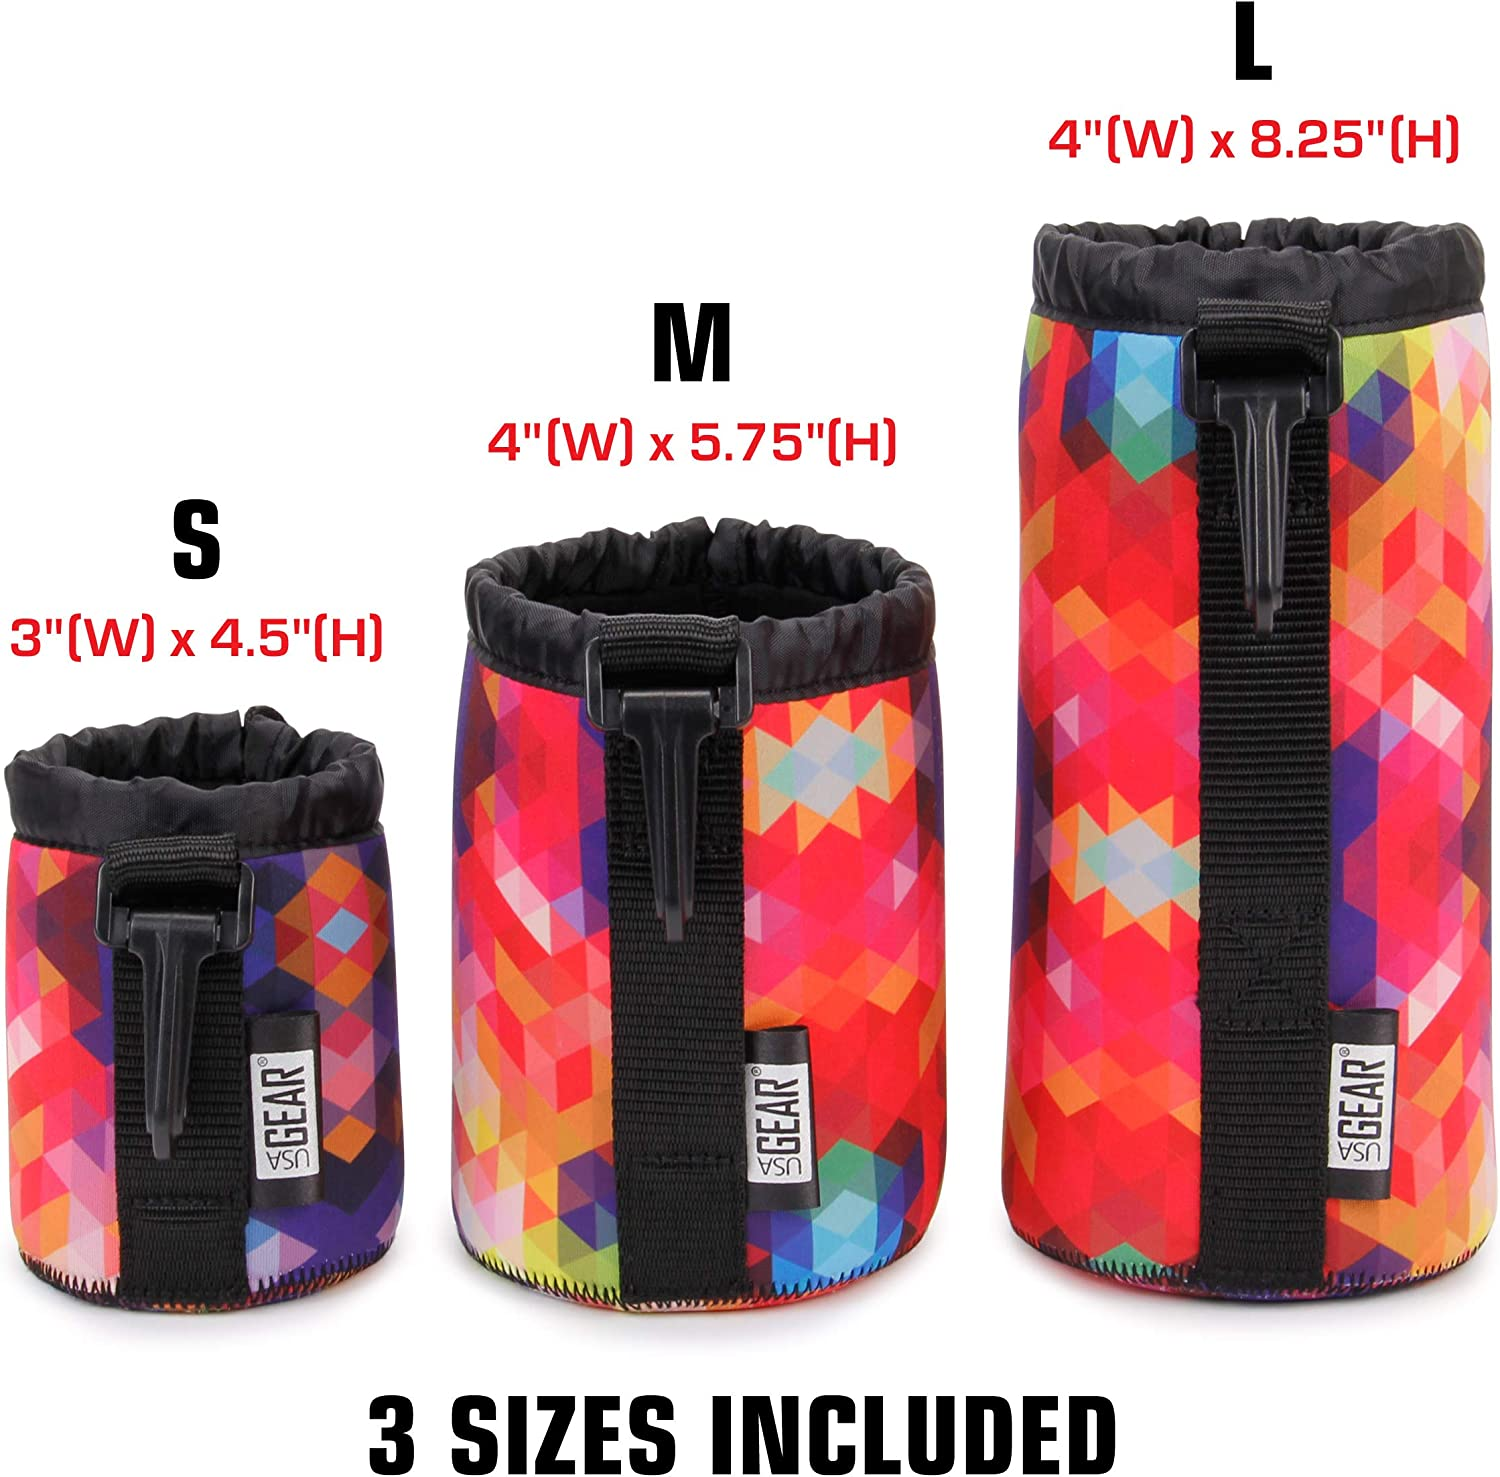 - Small USA GEAR FlexARMOR Protective Neoprene Lens Case Pouch Set 3-Pack Geometric Medium and Large Cases Hold Lenses up to 70-300mm with Drawstring Opening Reinforced Belt Loop Attached Clip